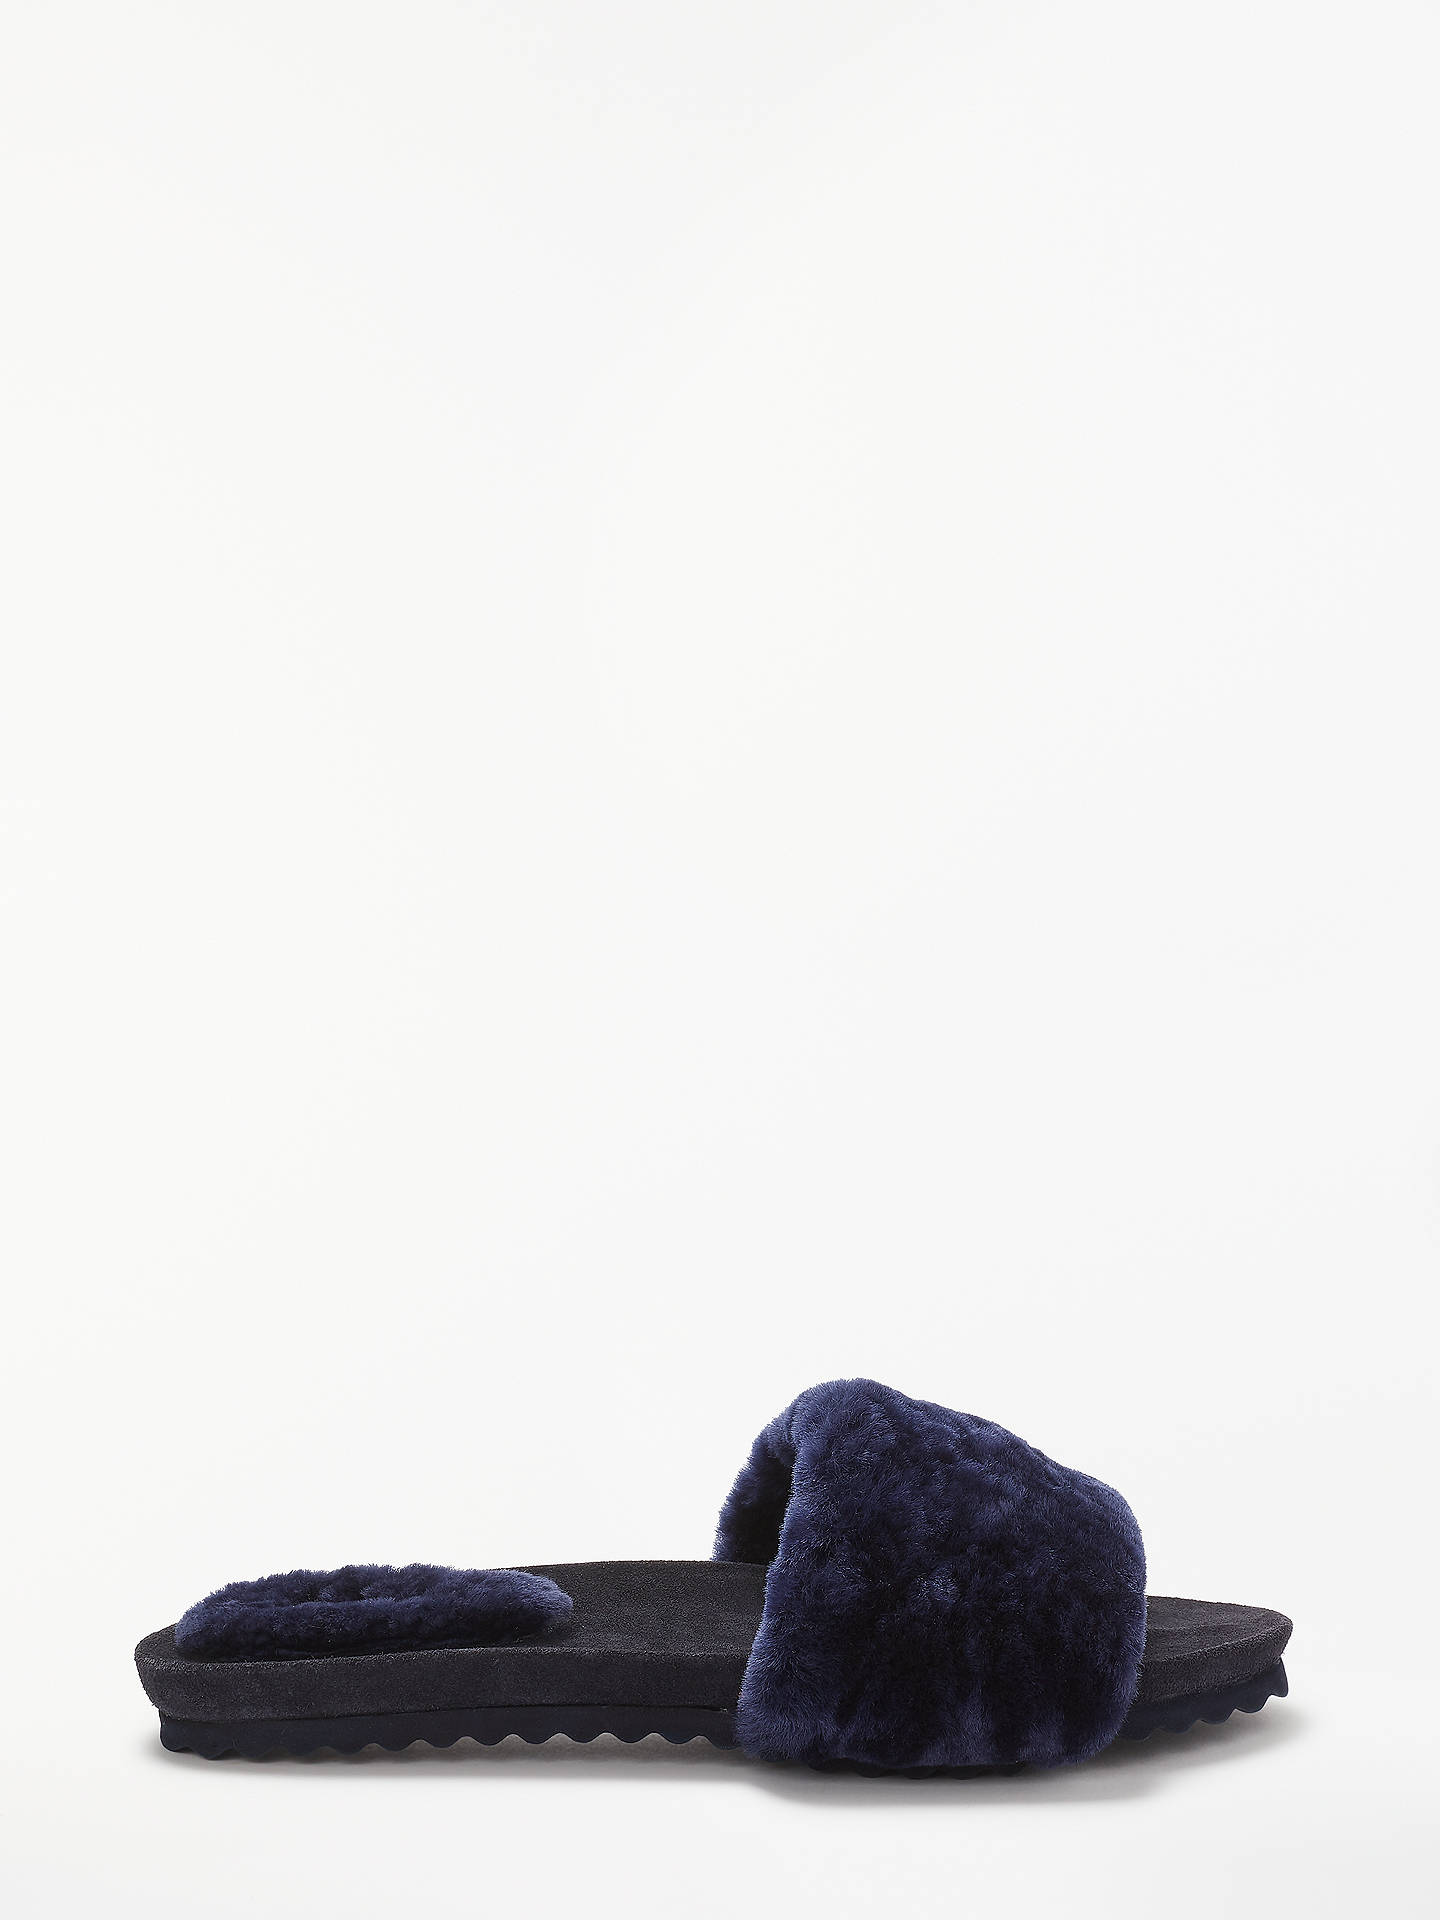 5fc812704c116 Boden Shearling Lounge Slide Slippers, Navy at John Lewis & Partners